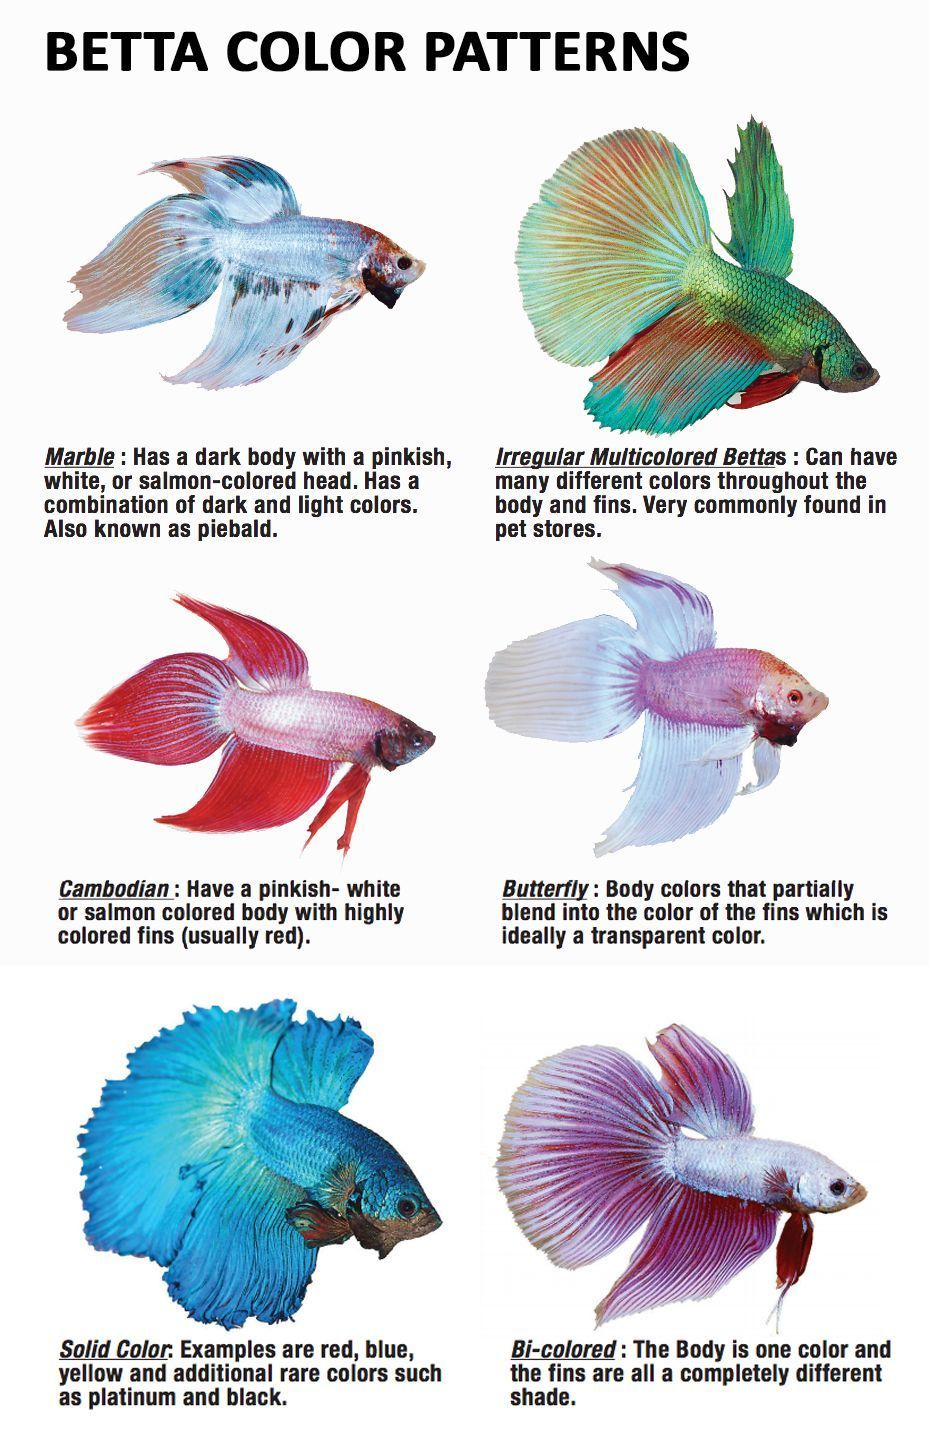 These Are The Most Common Types Of Betta Fish Plakat Betta Closely Related To The Traditional Fighting Betta The Plak Betta Fish Types Betta Fish Tank Betta